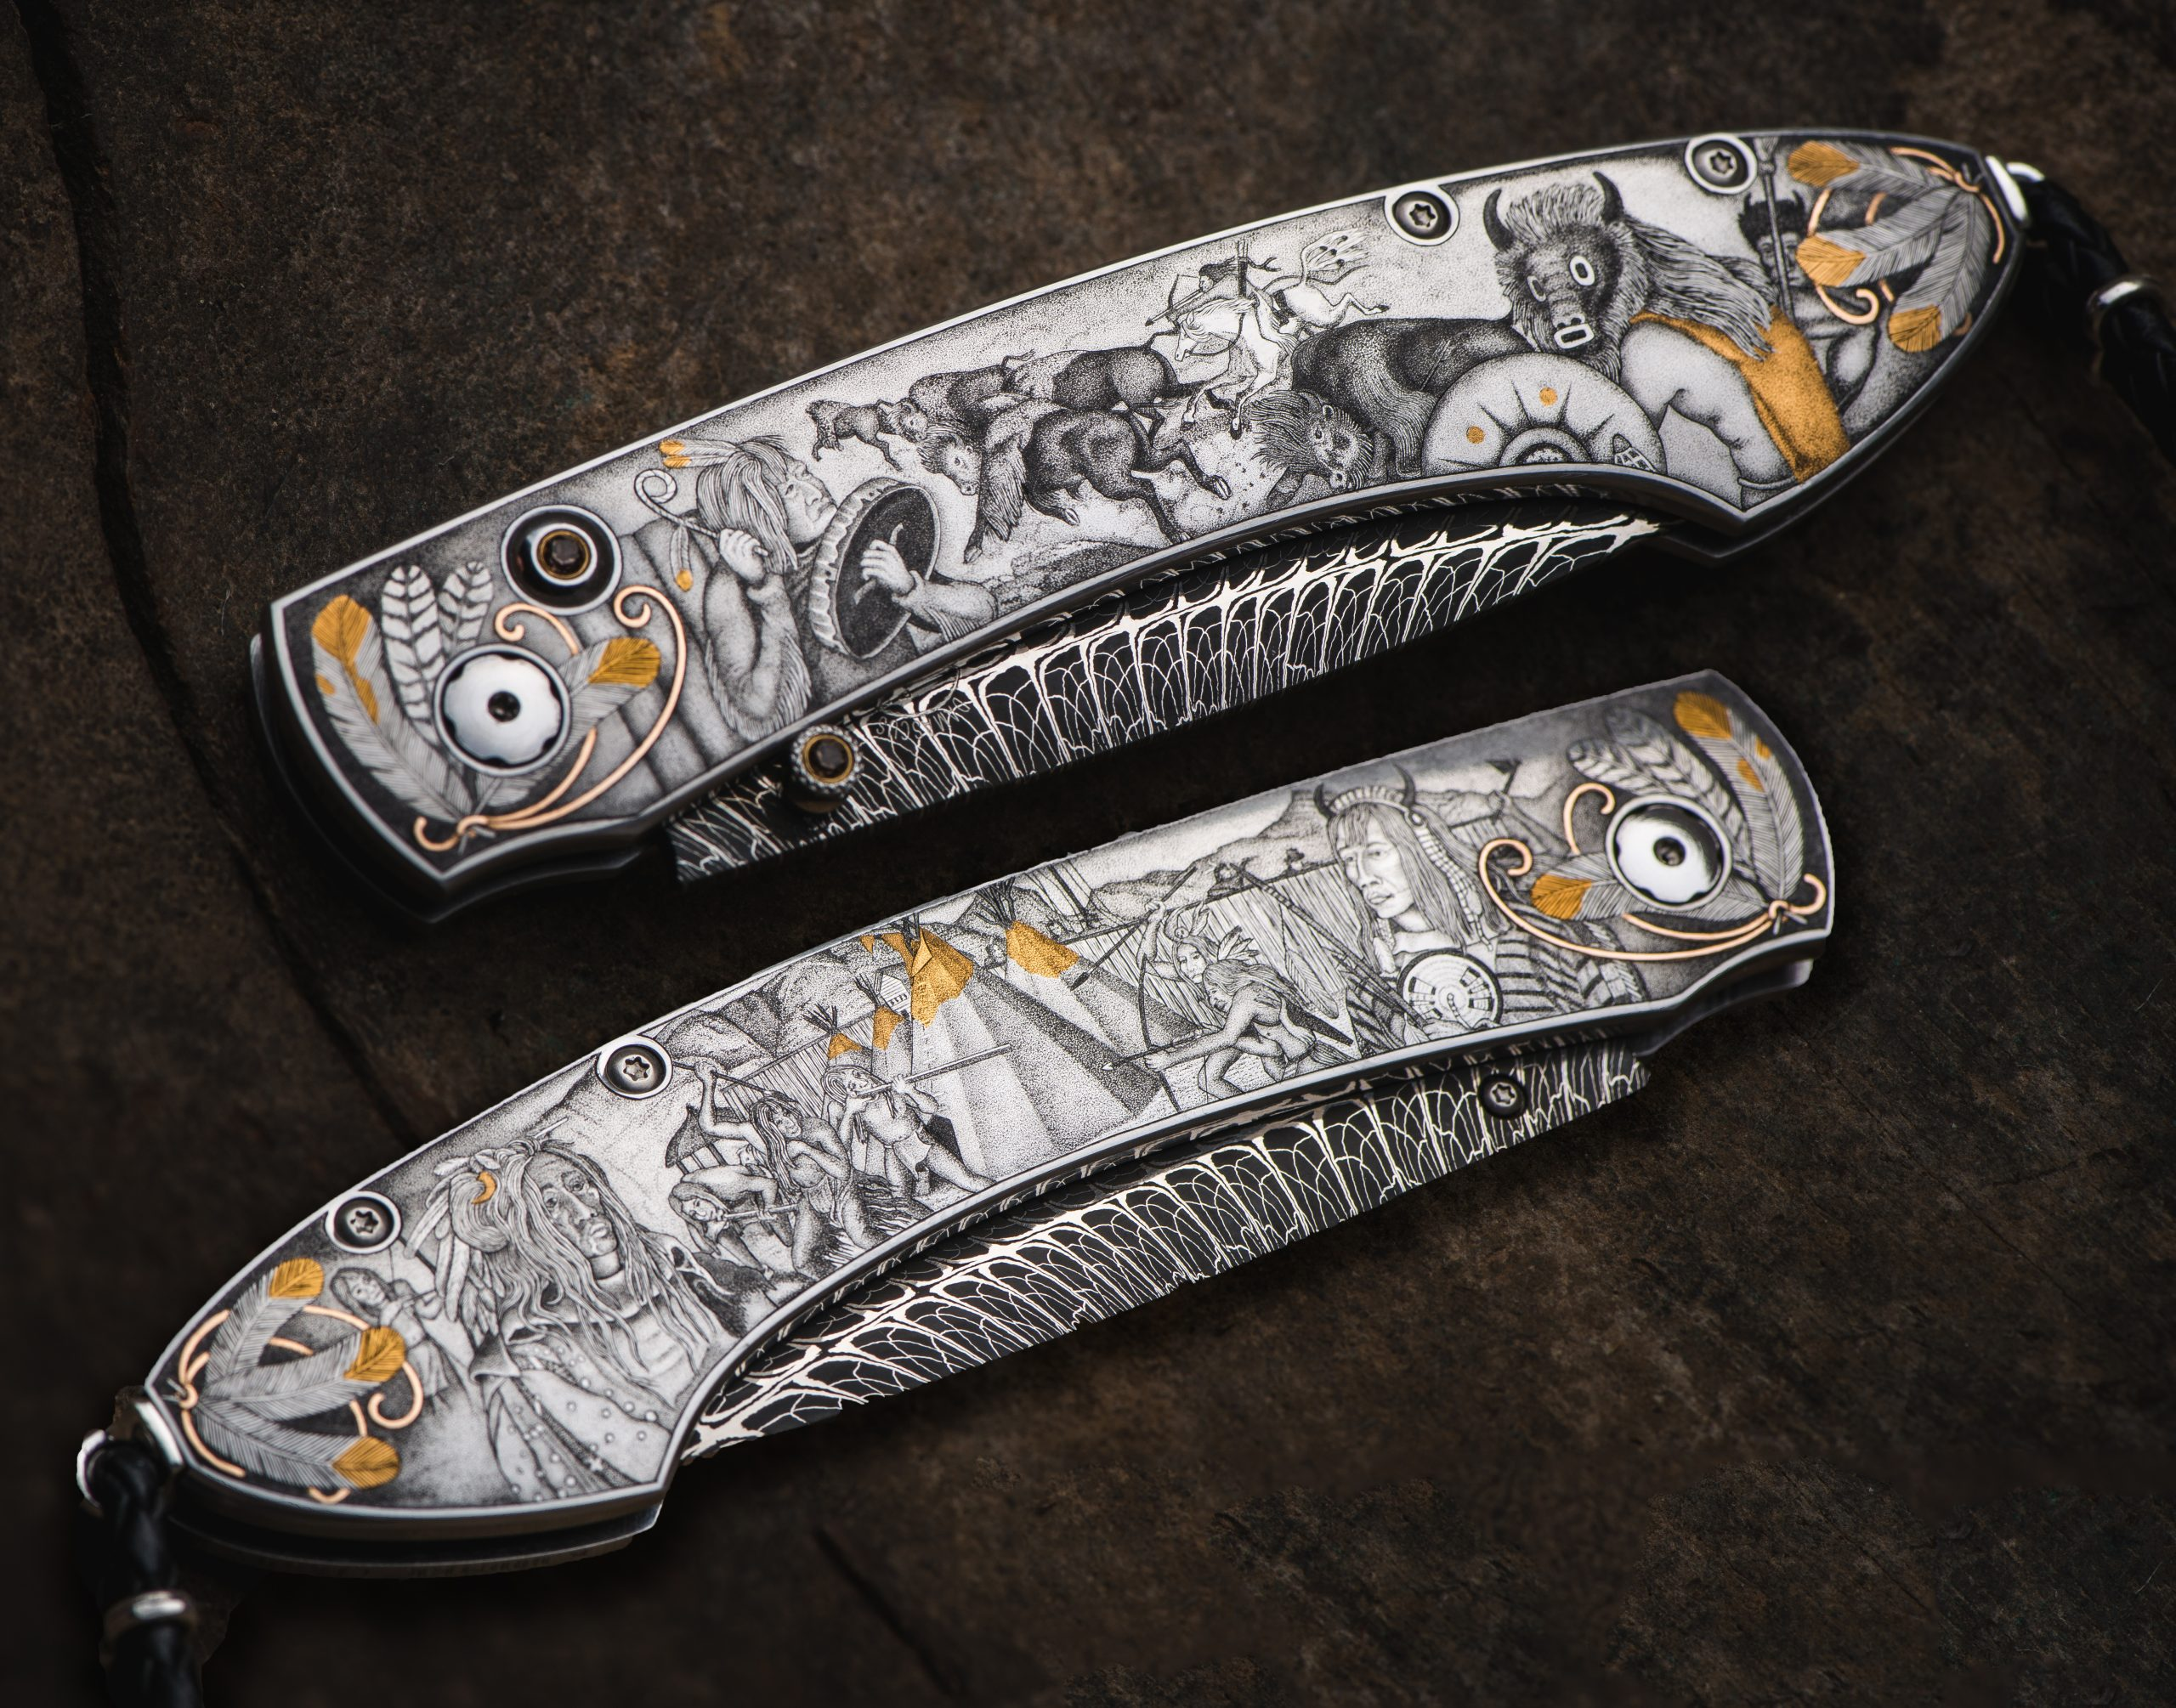 Knives as Art: Craftsmanship and Style